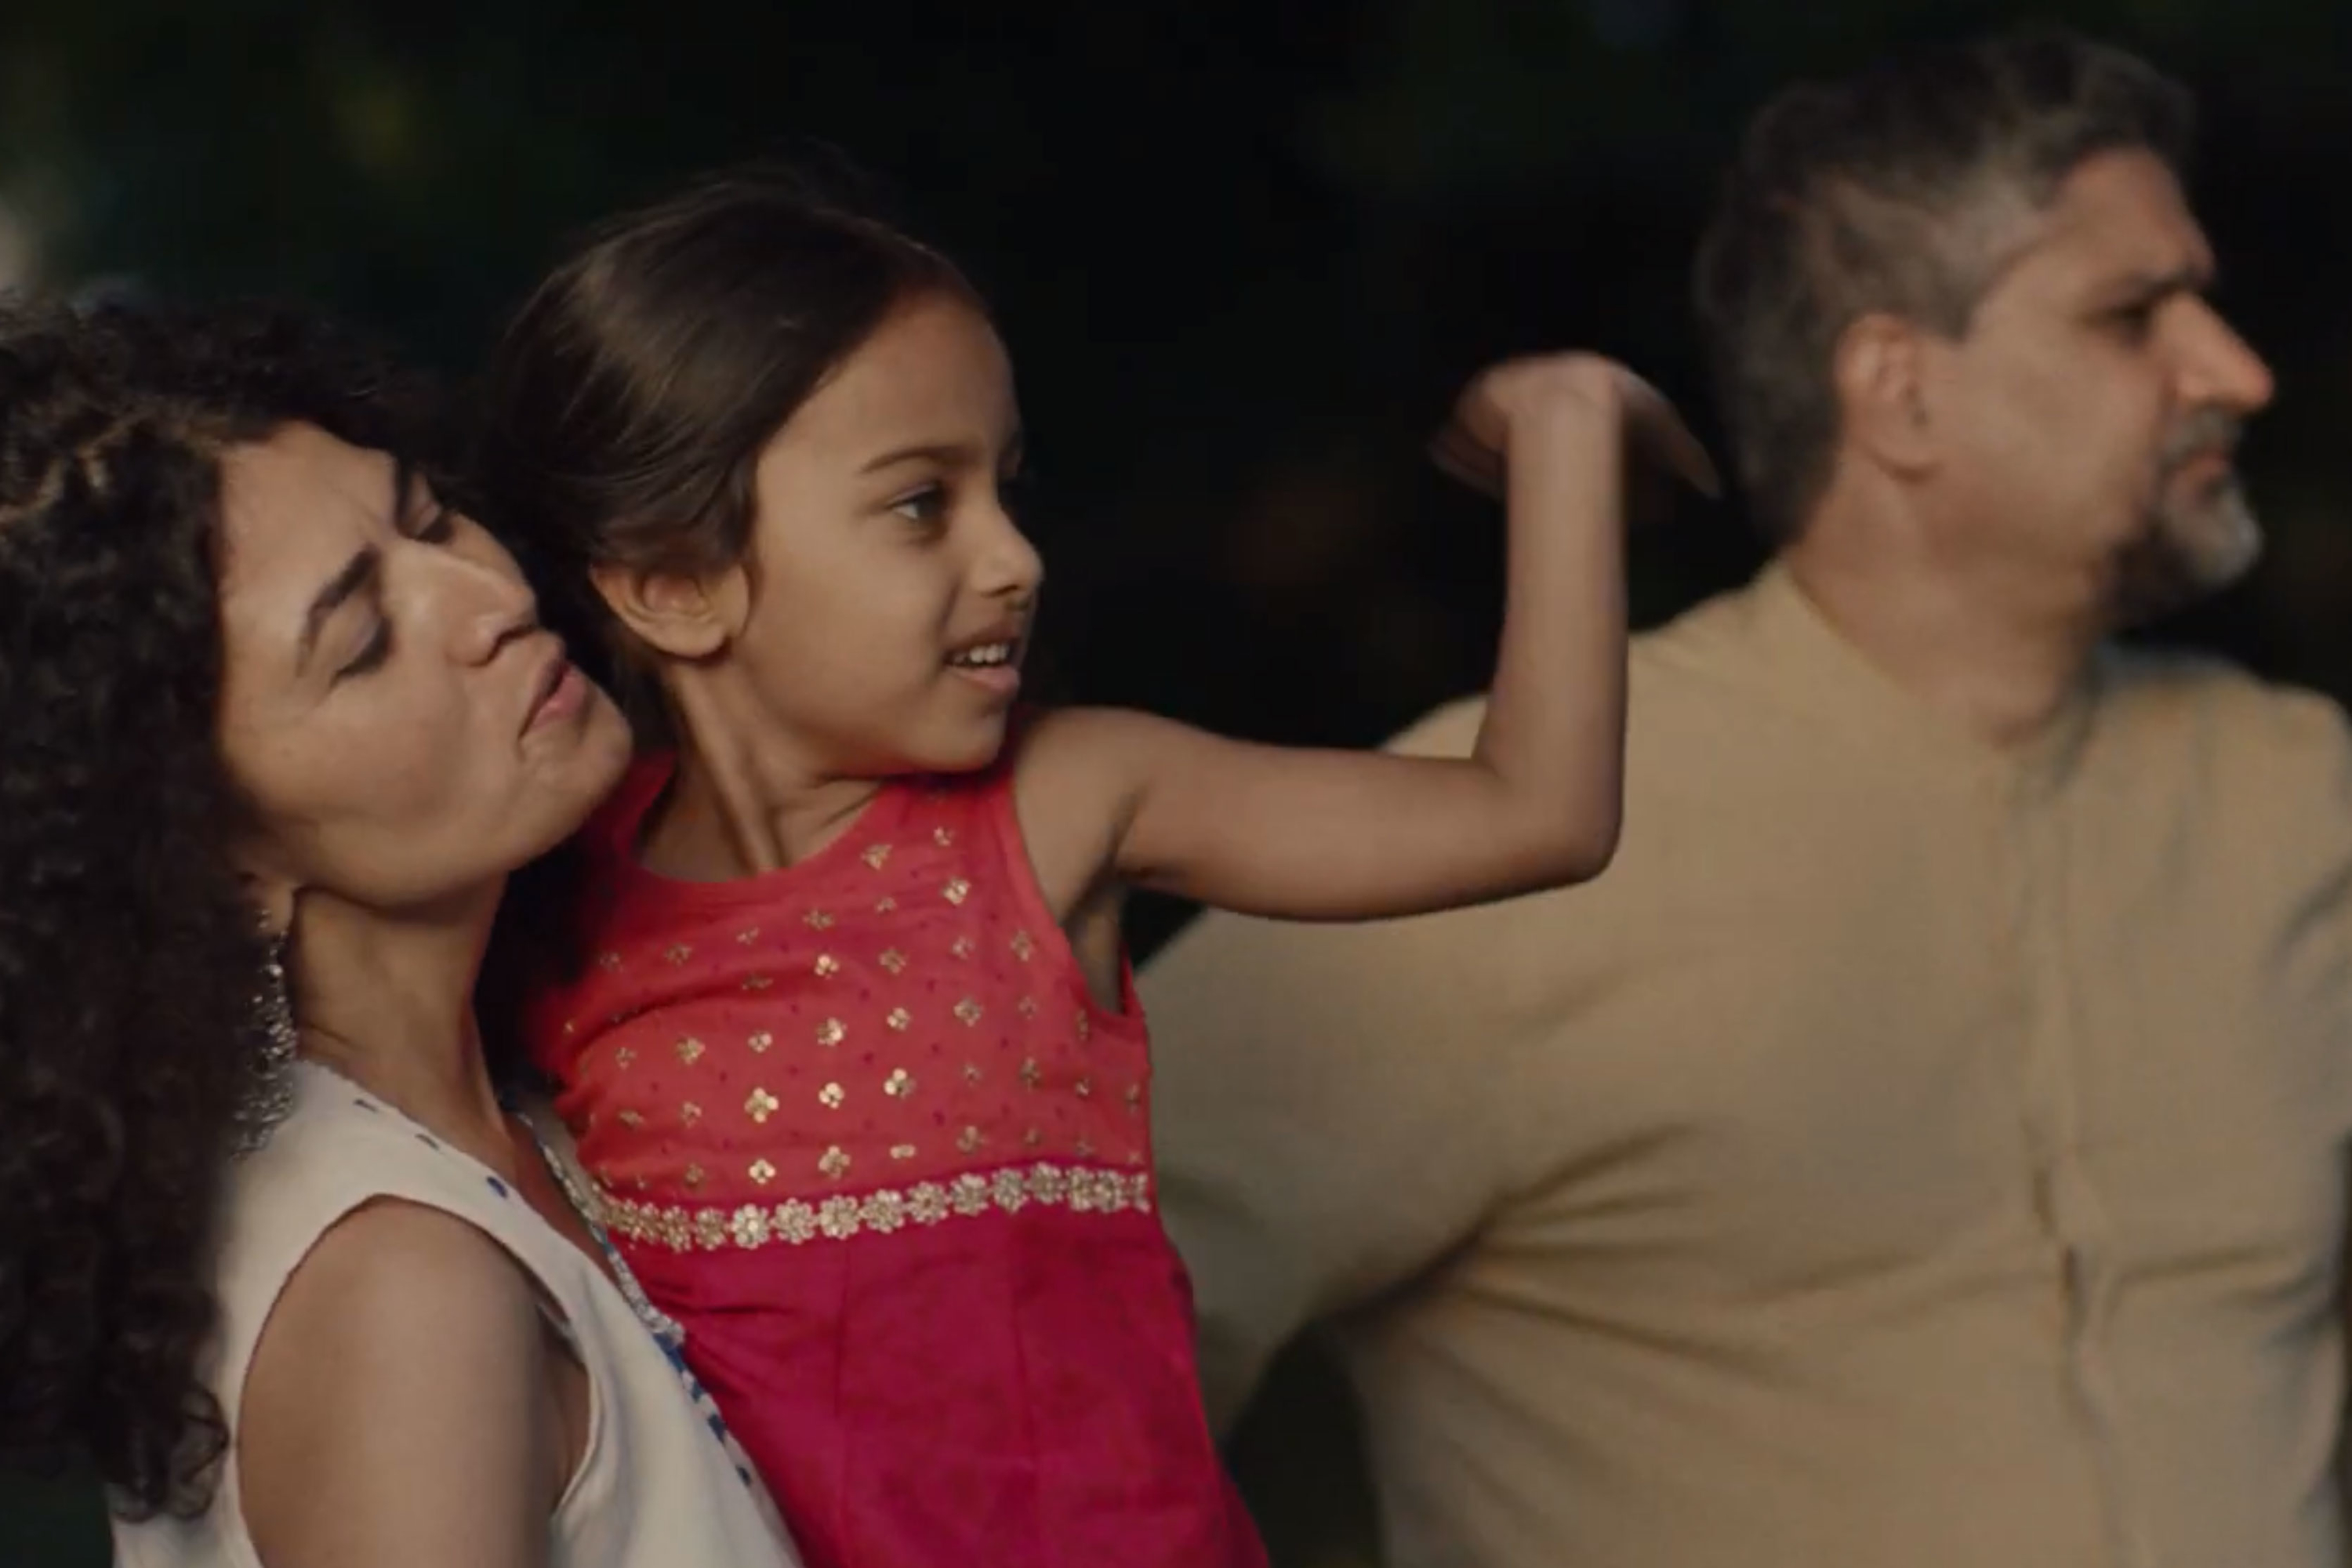 The Ad Council is urging everyone to do their part in making America a more welcoming nation